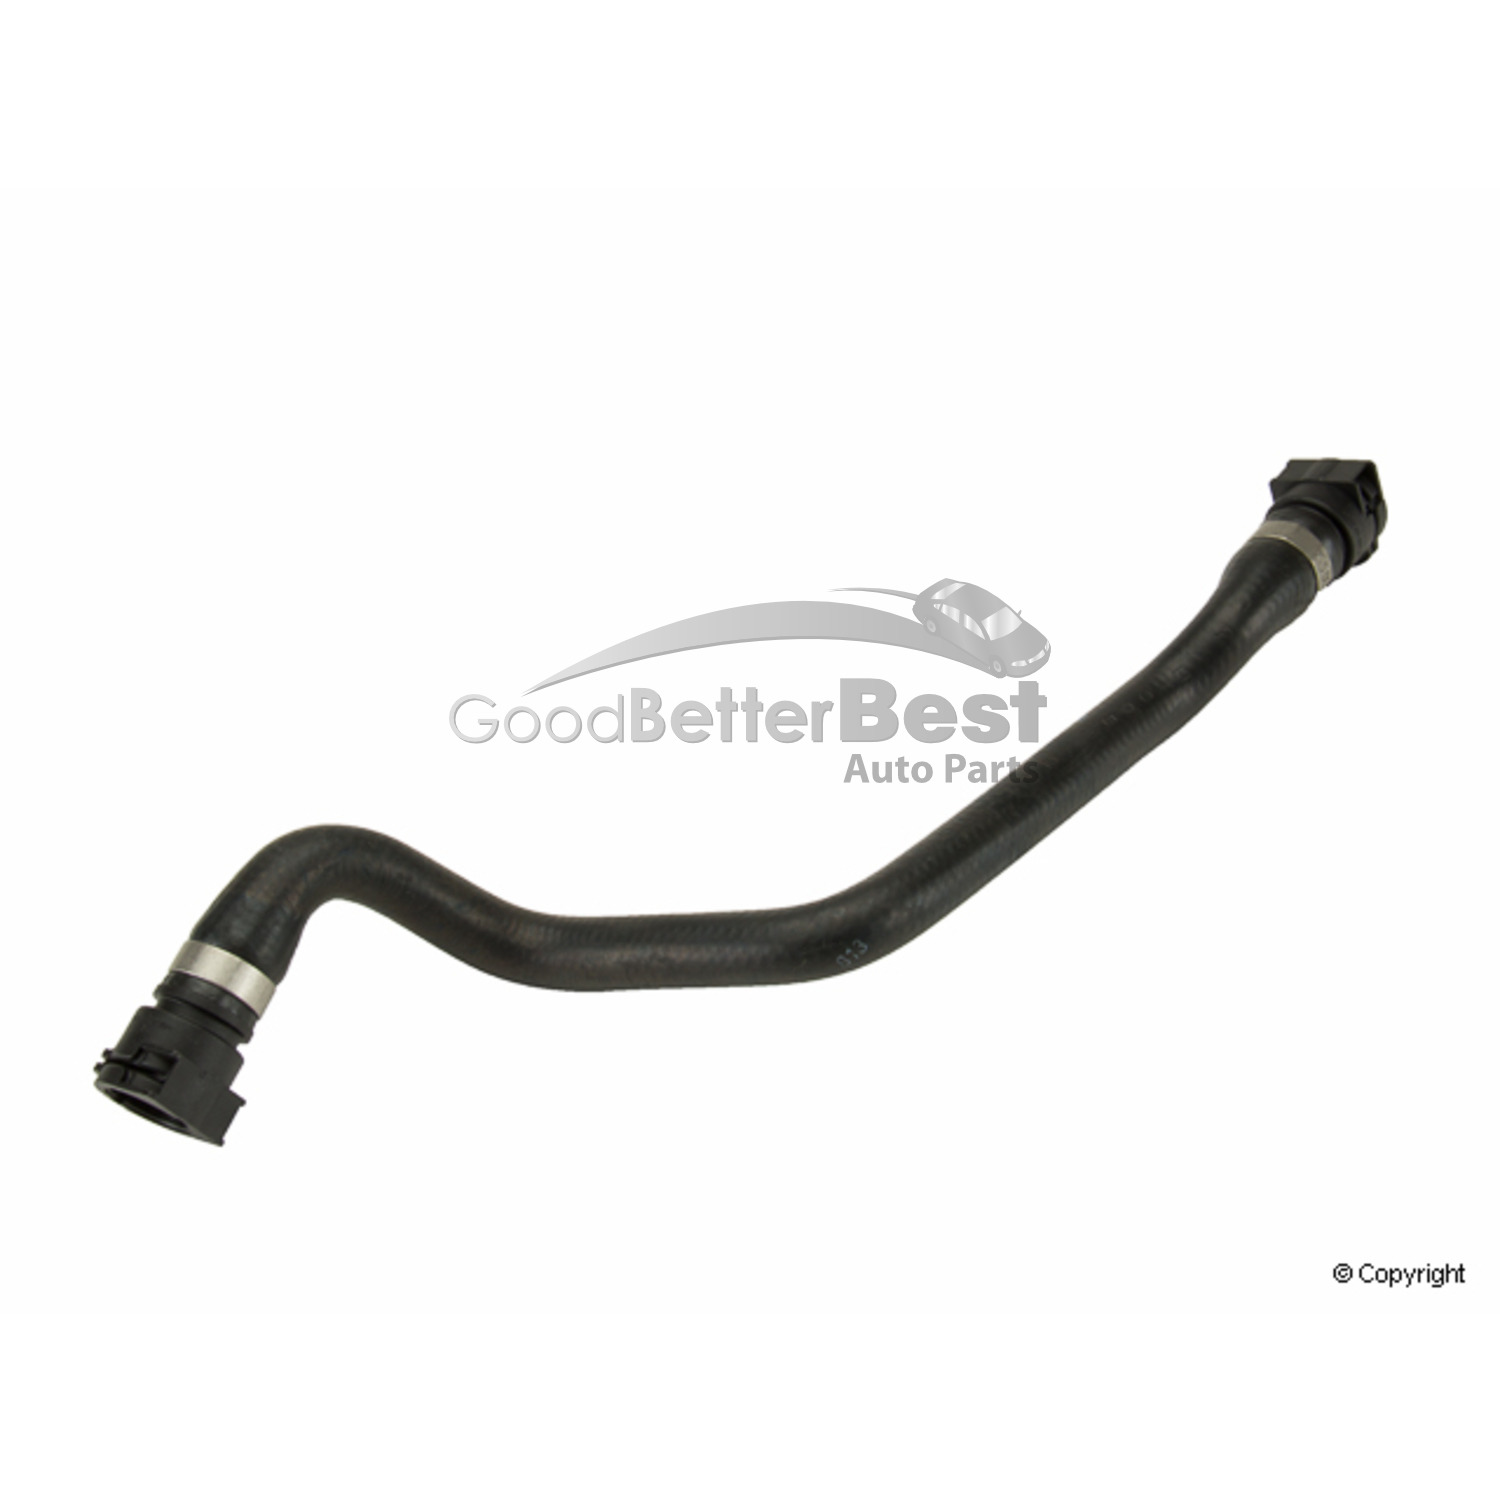 New Genuine Engine Coolant Reservoir Hose 17127536236 for BMW X5